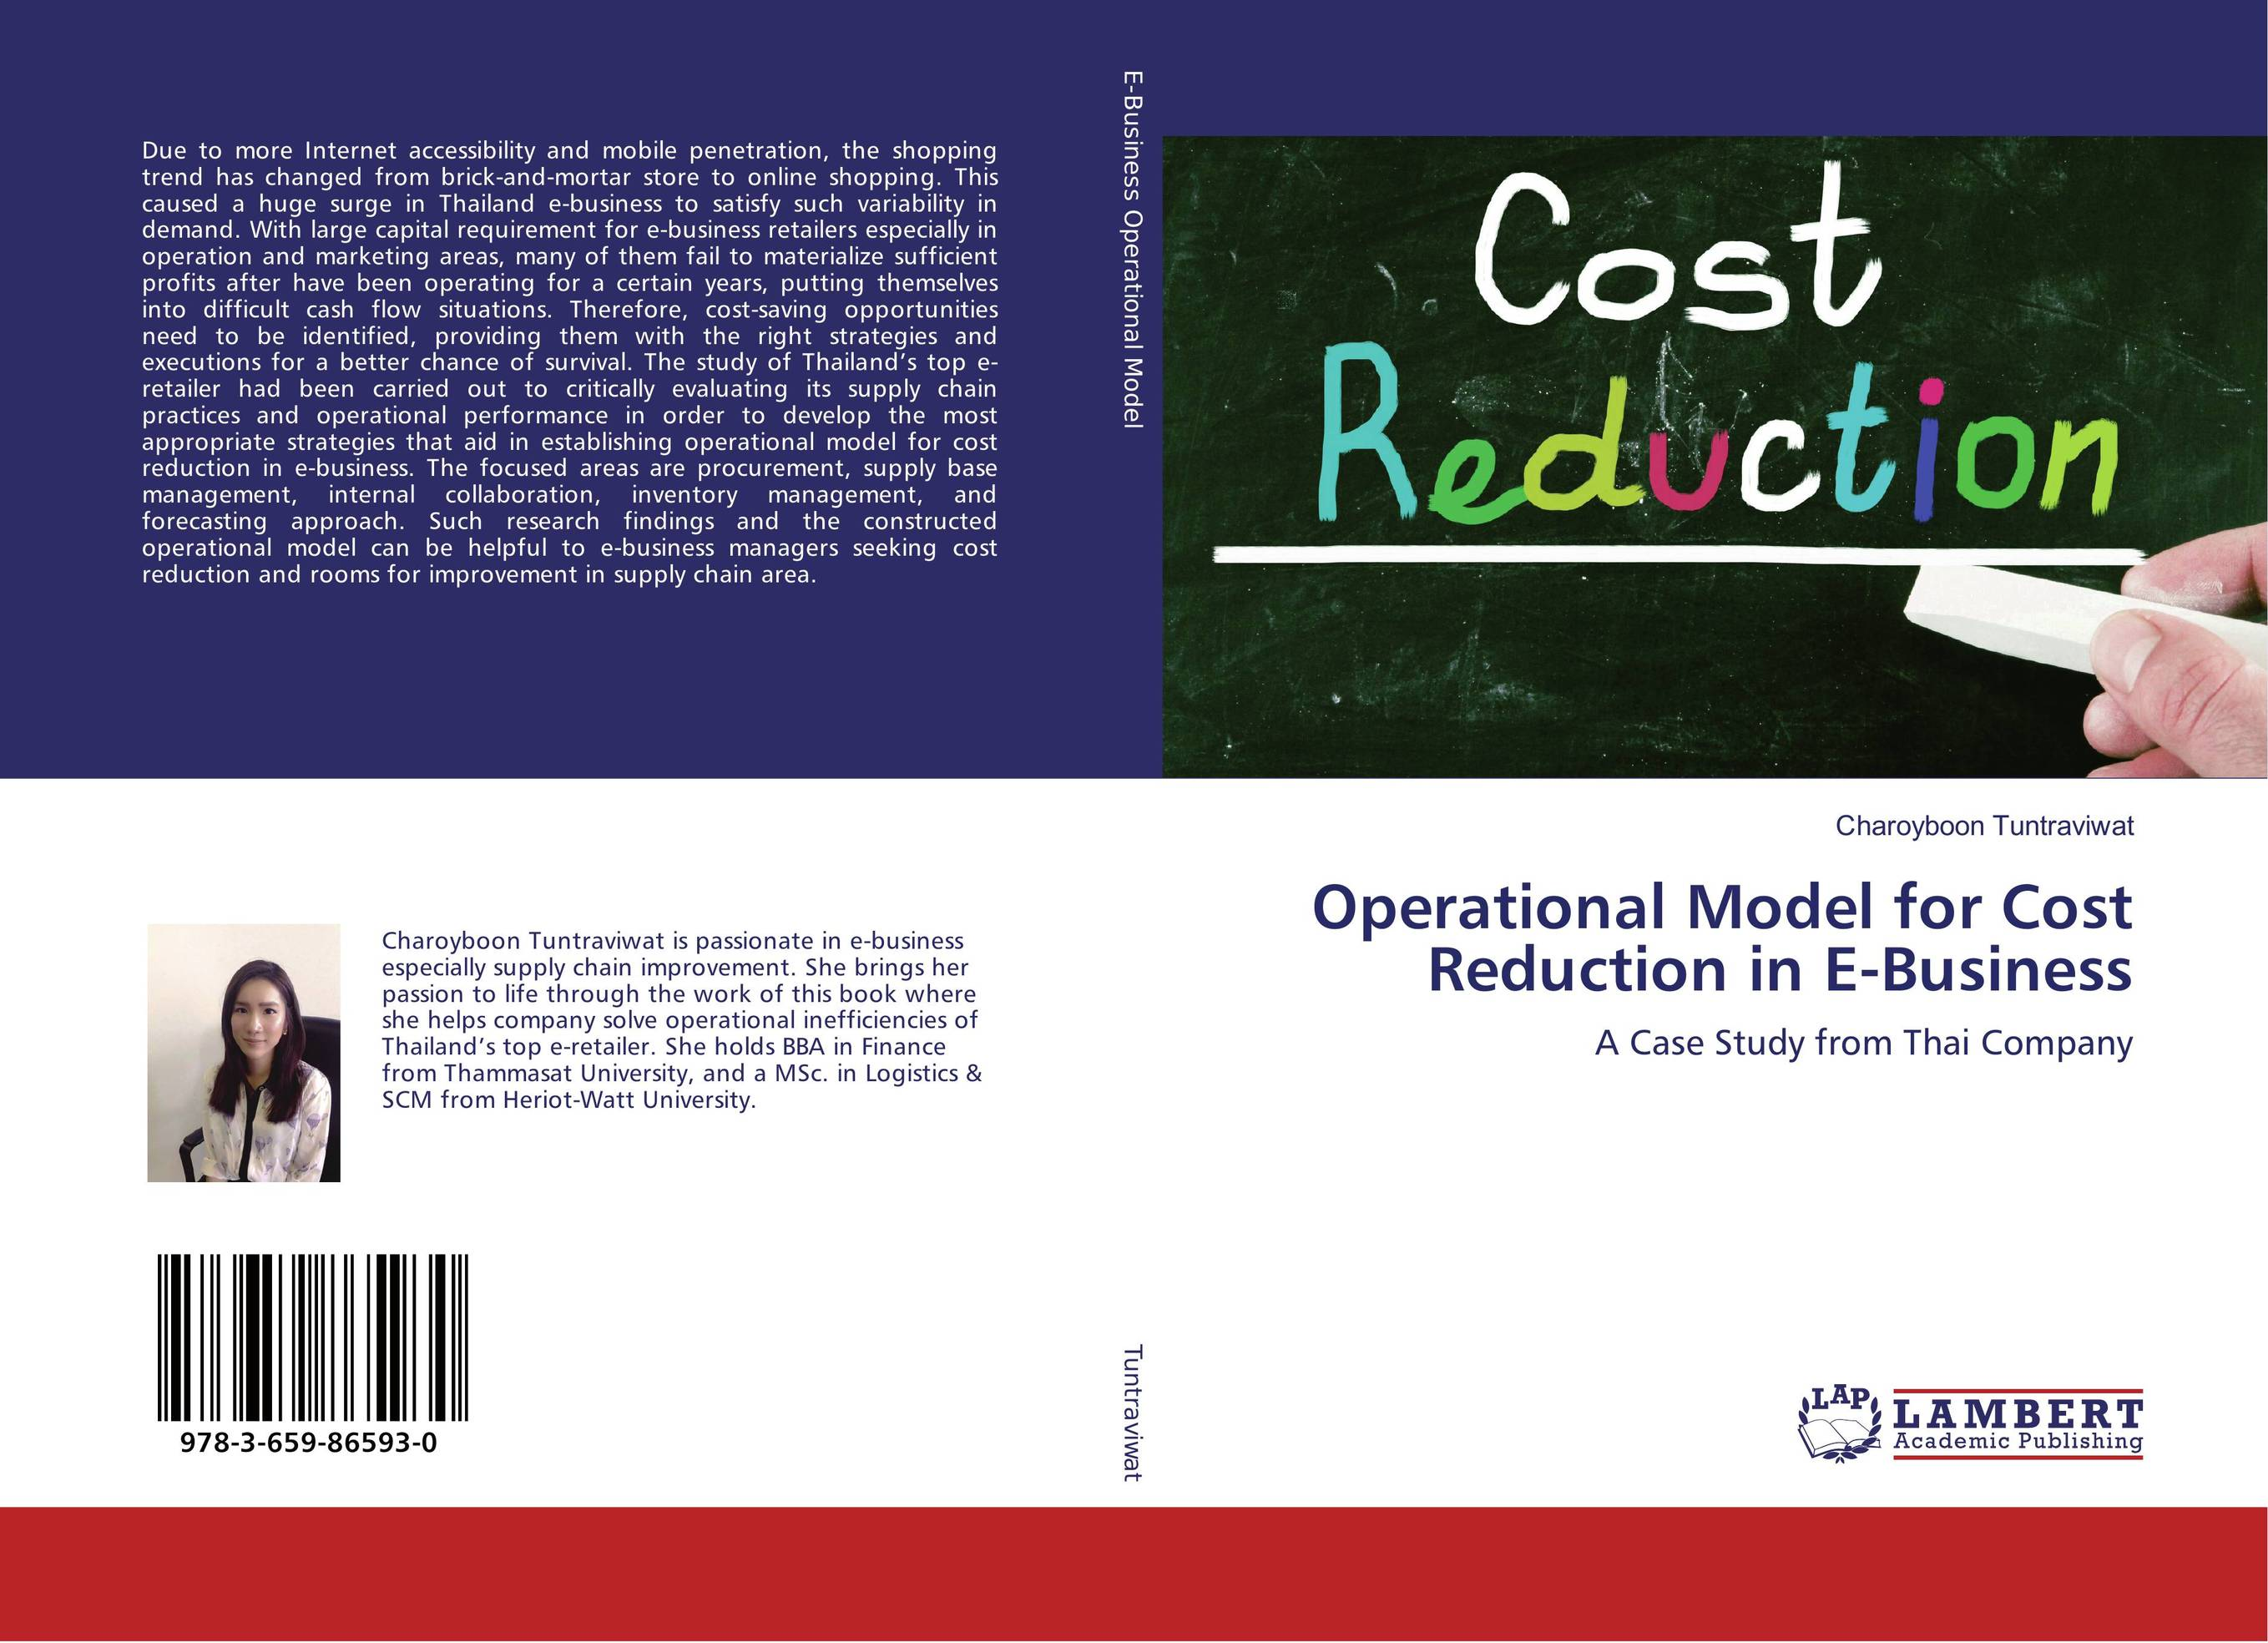 Operational Model for Cost Reduction in E-Business robert davis a demand driven inventory optimization and replenishment creating a more efficient supply chain